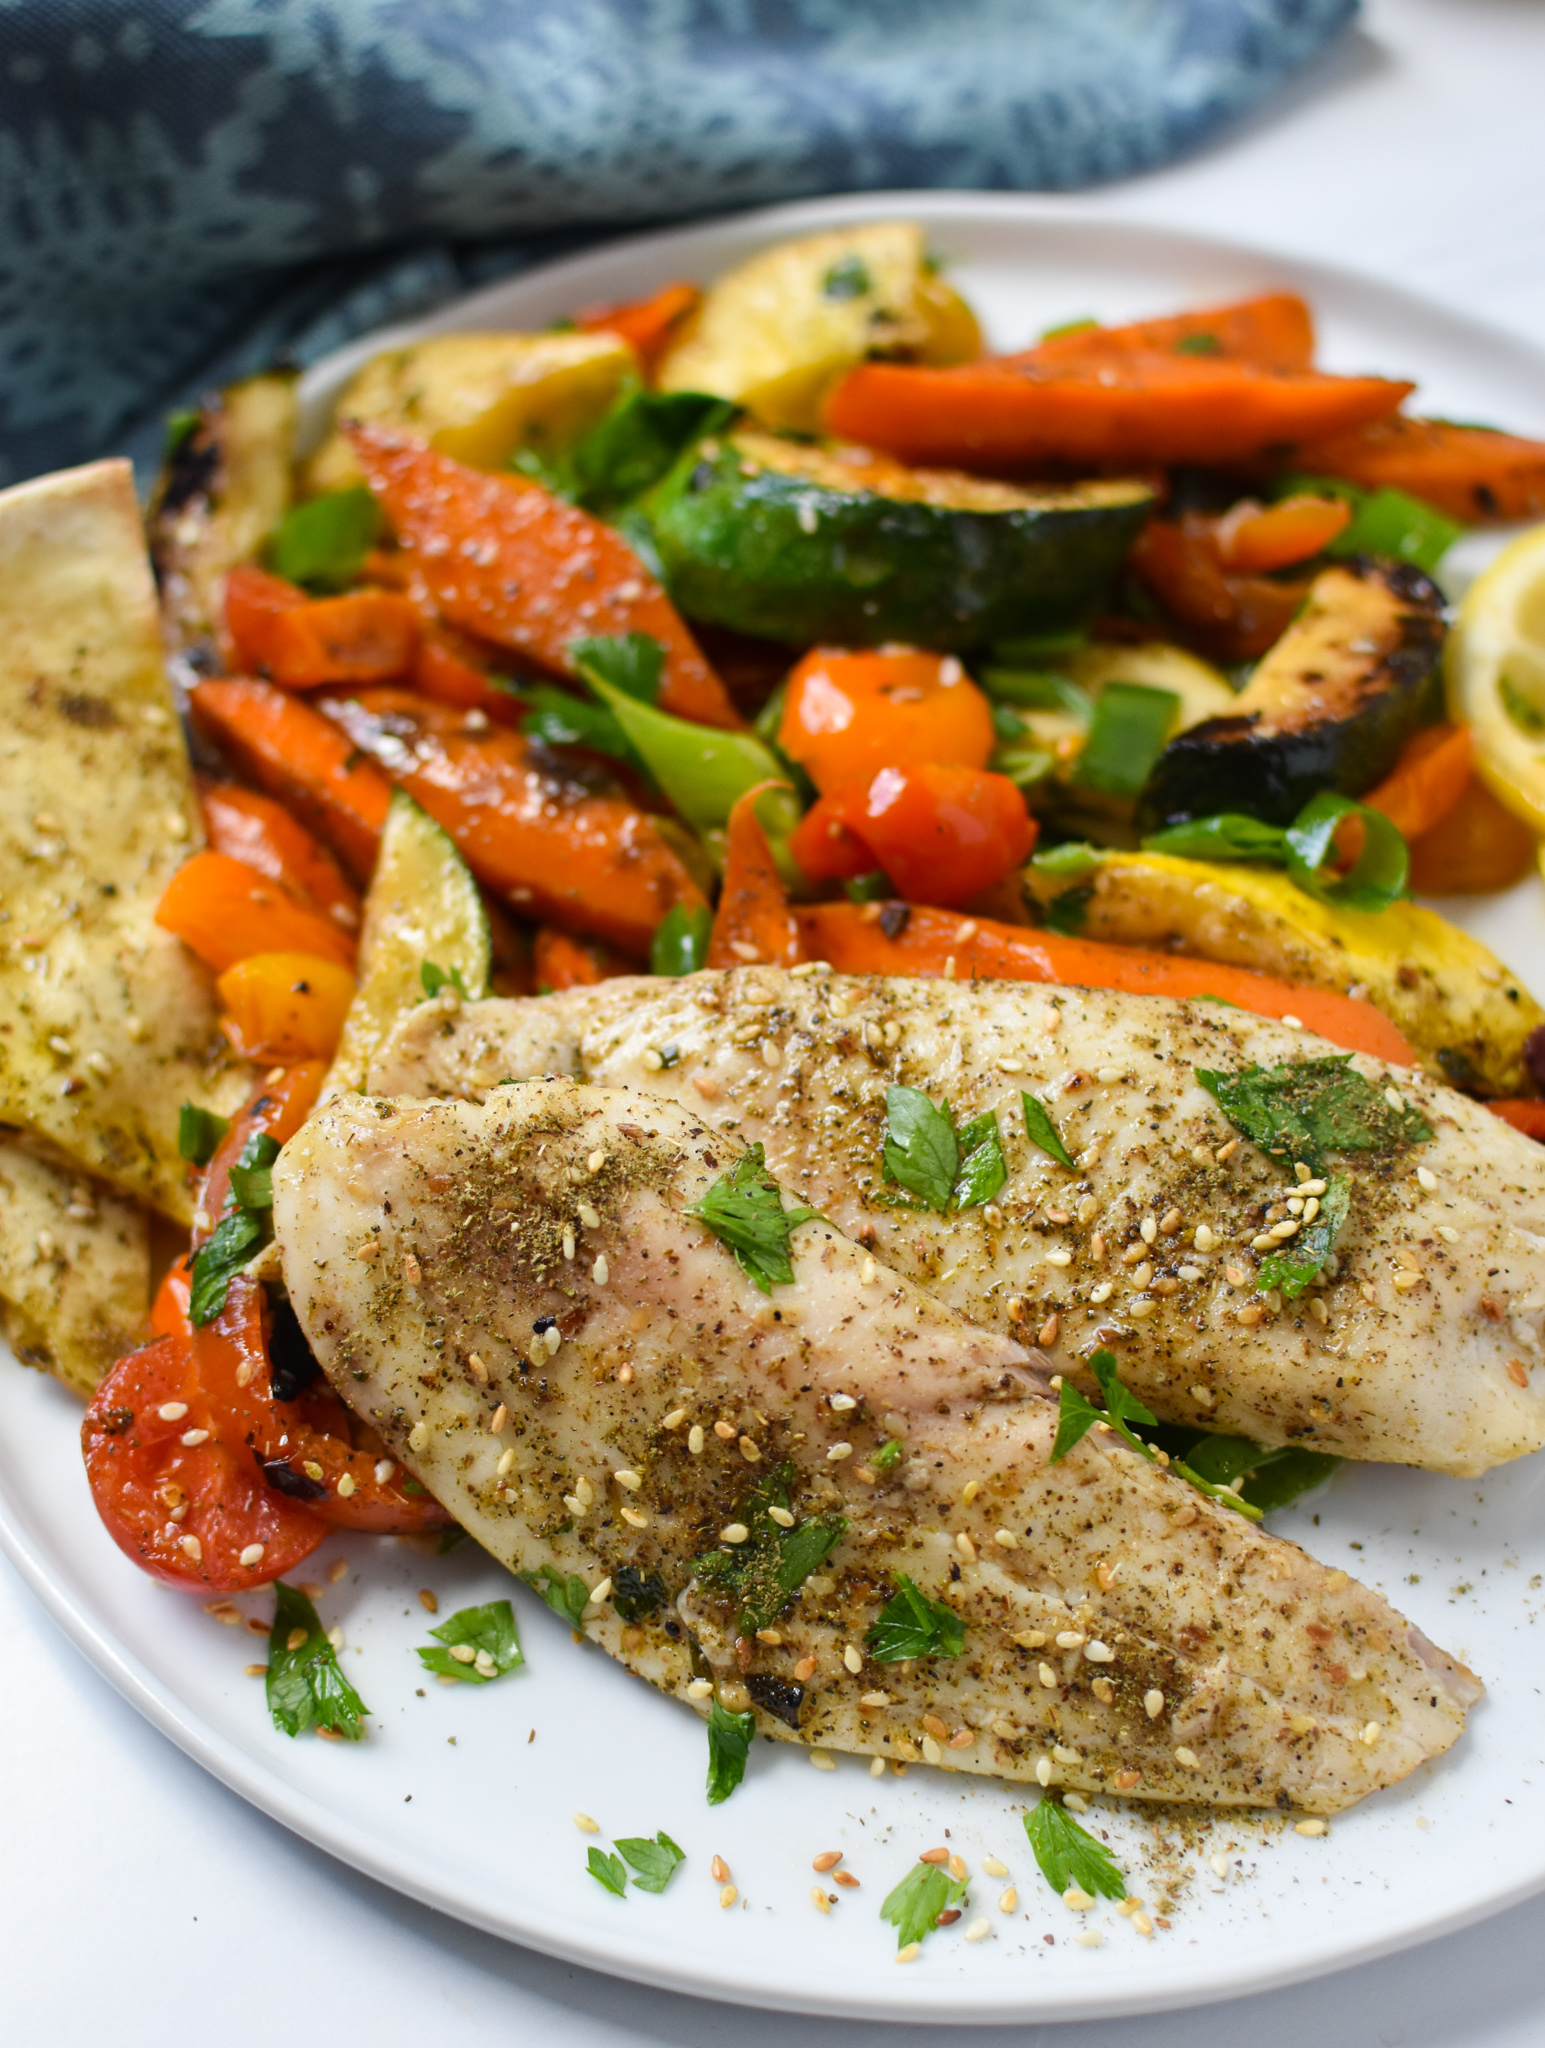 Mediterranean Baked Tilapia Recipe on a plate.